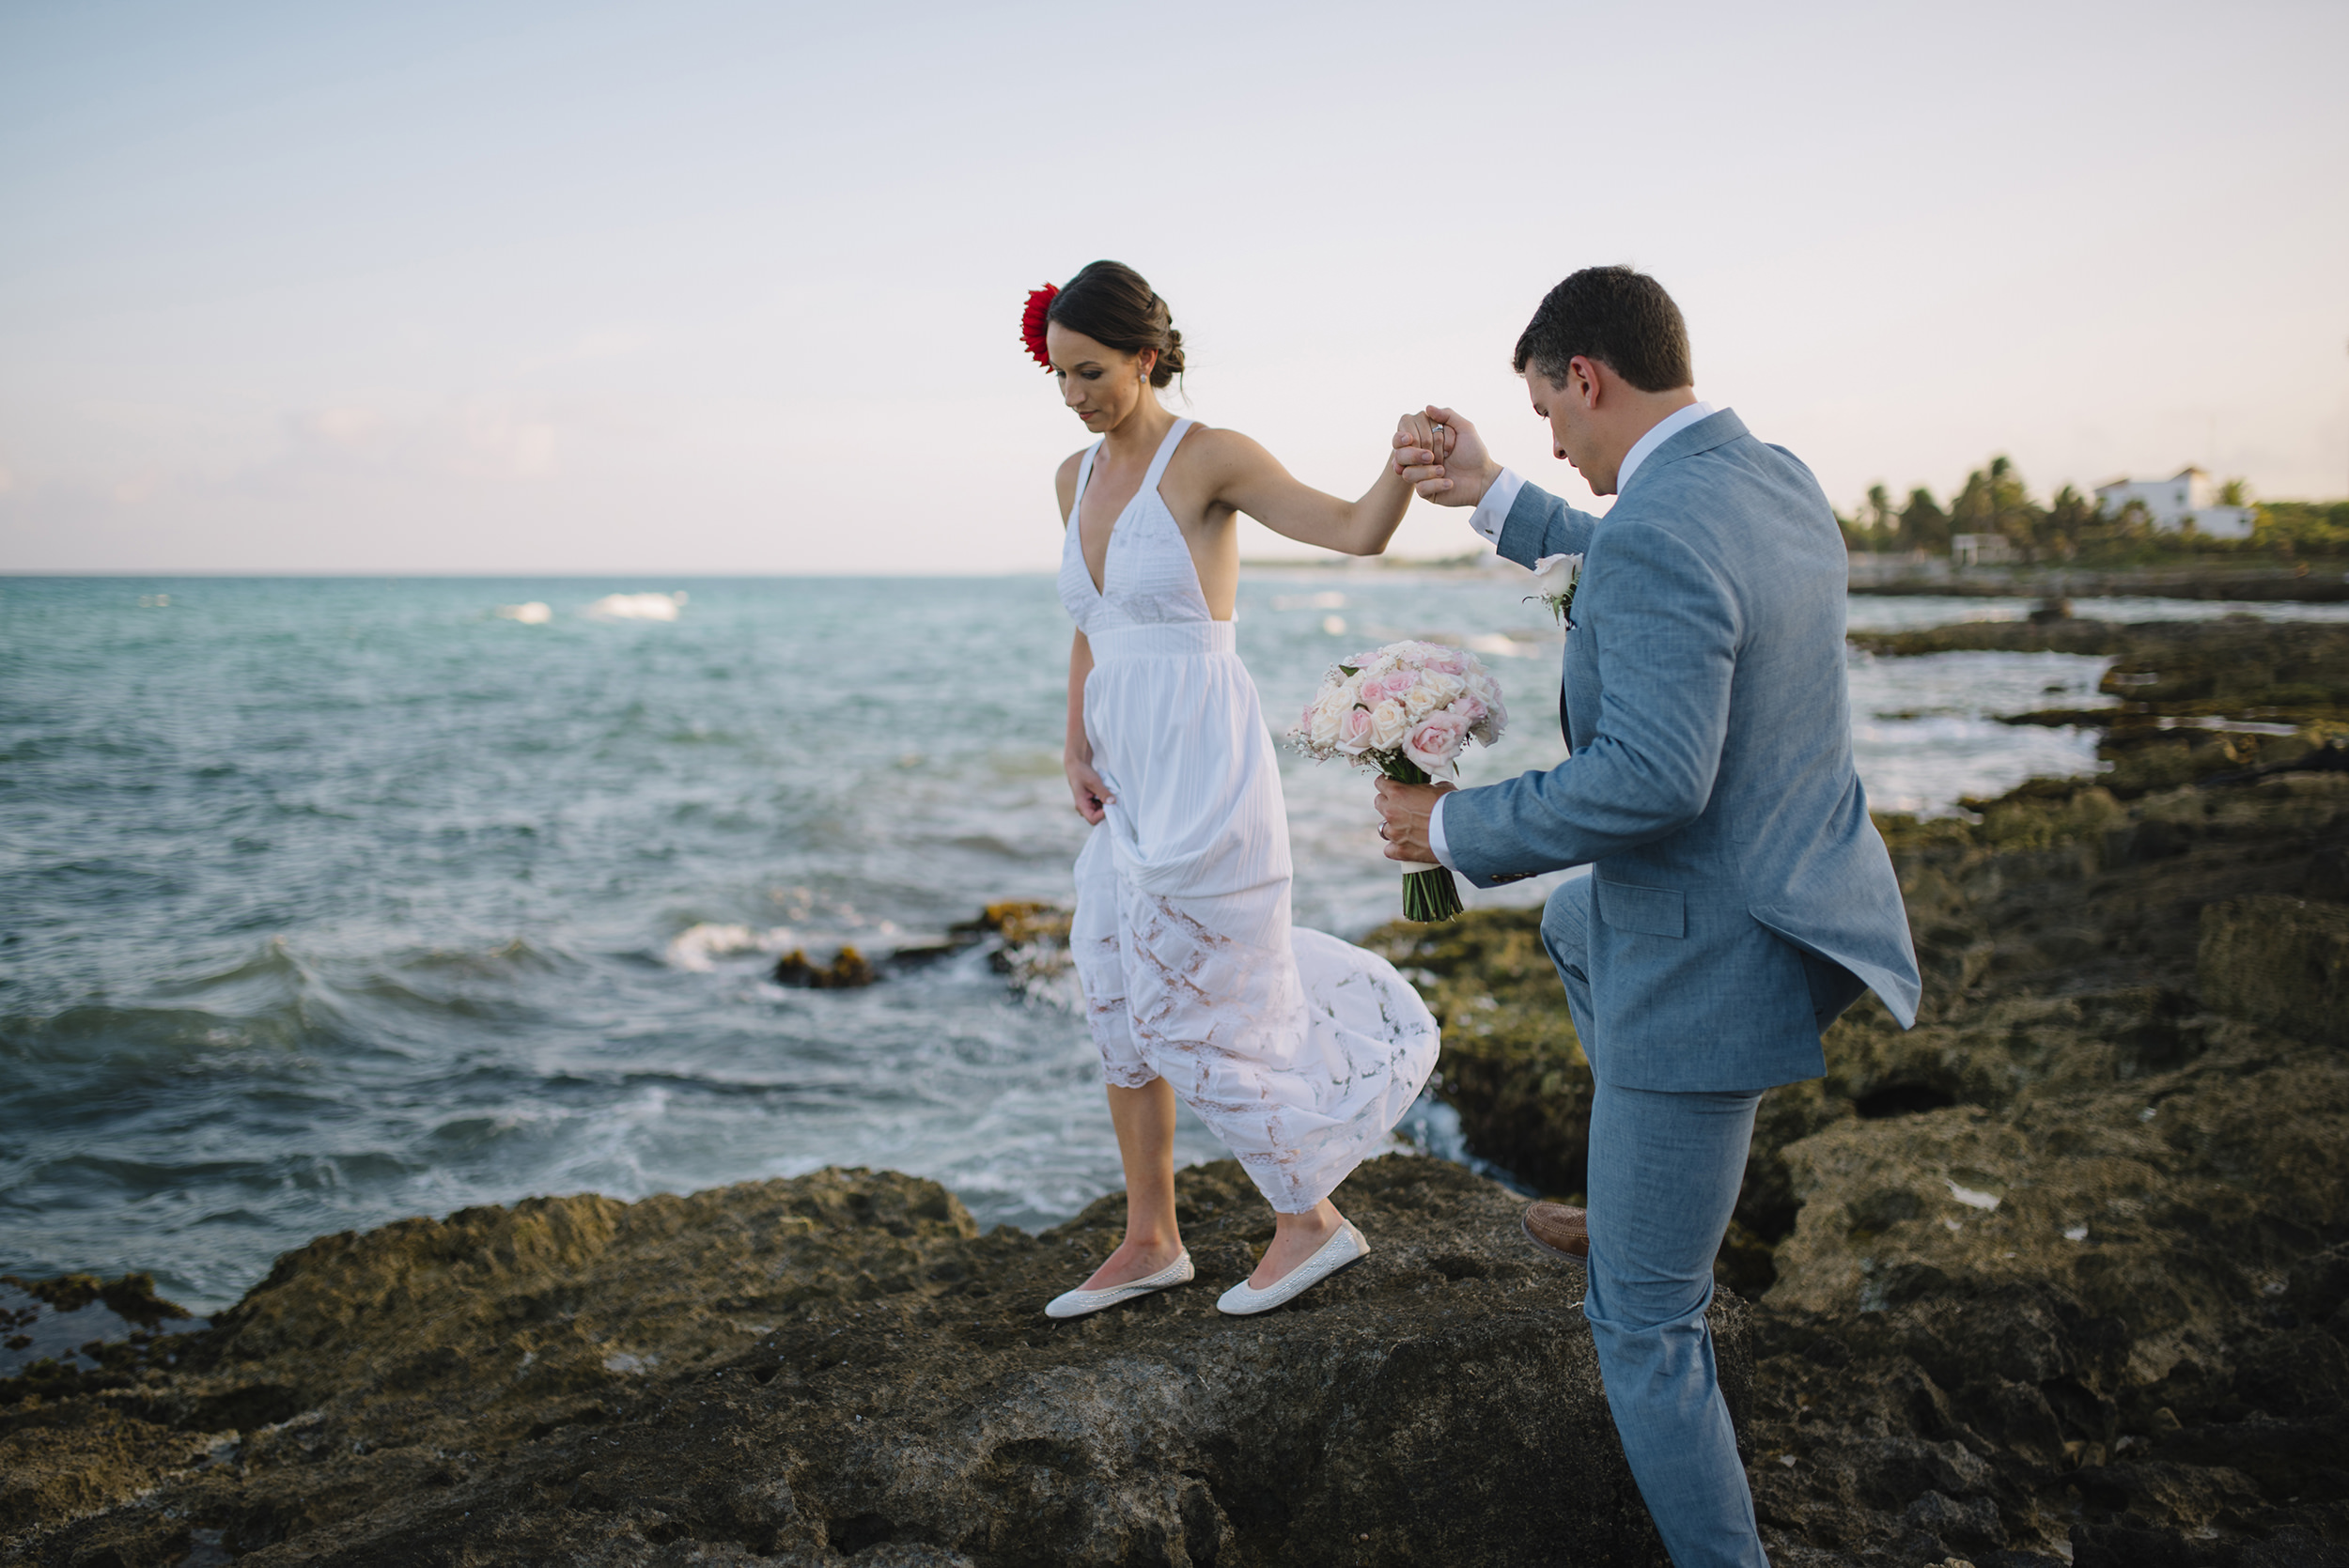 Colby-and-Jess-Intimate-Beach-Wedding-Destination-Cancun-Mexico69.jpg